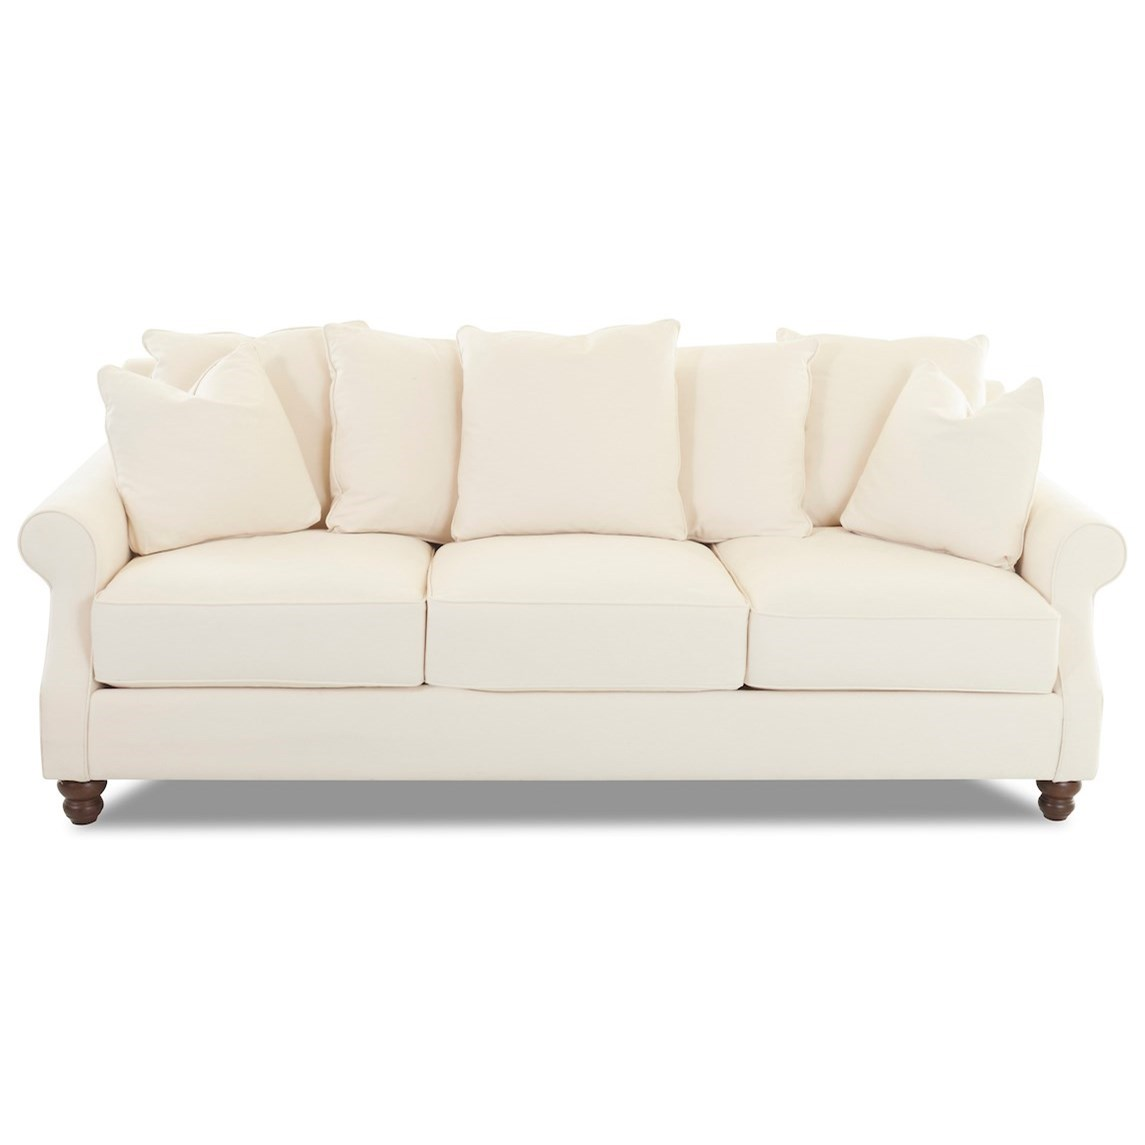 Tifton Sofa w/ Scattered Back Pillows by Klaussner at Johnny Janosik